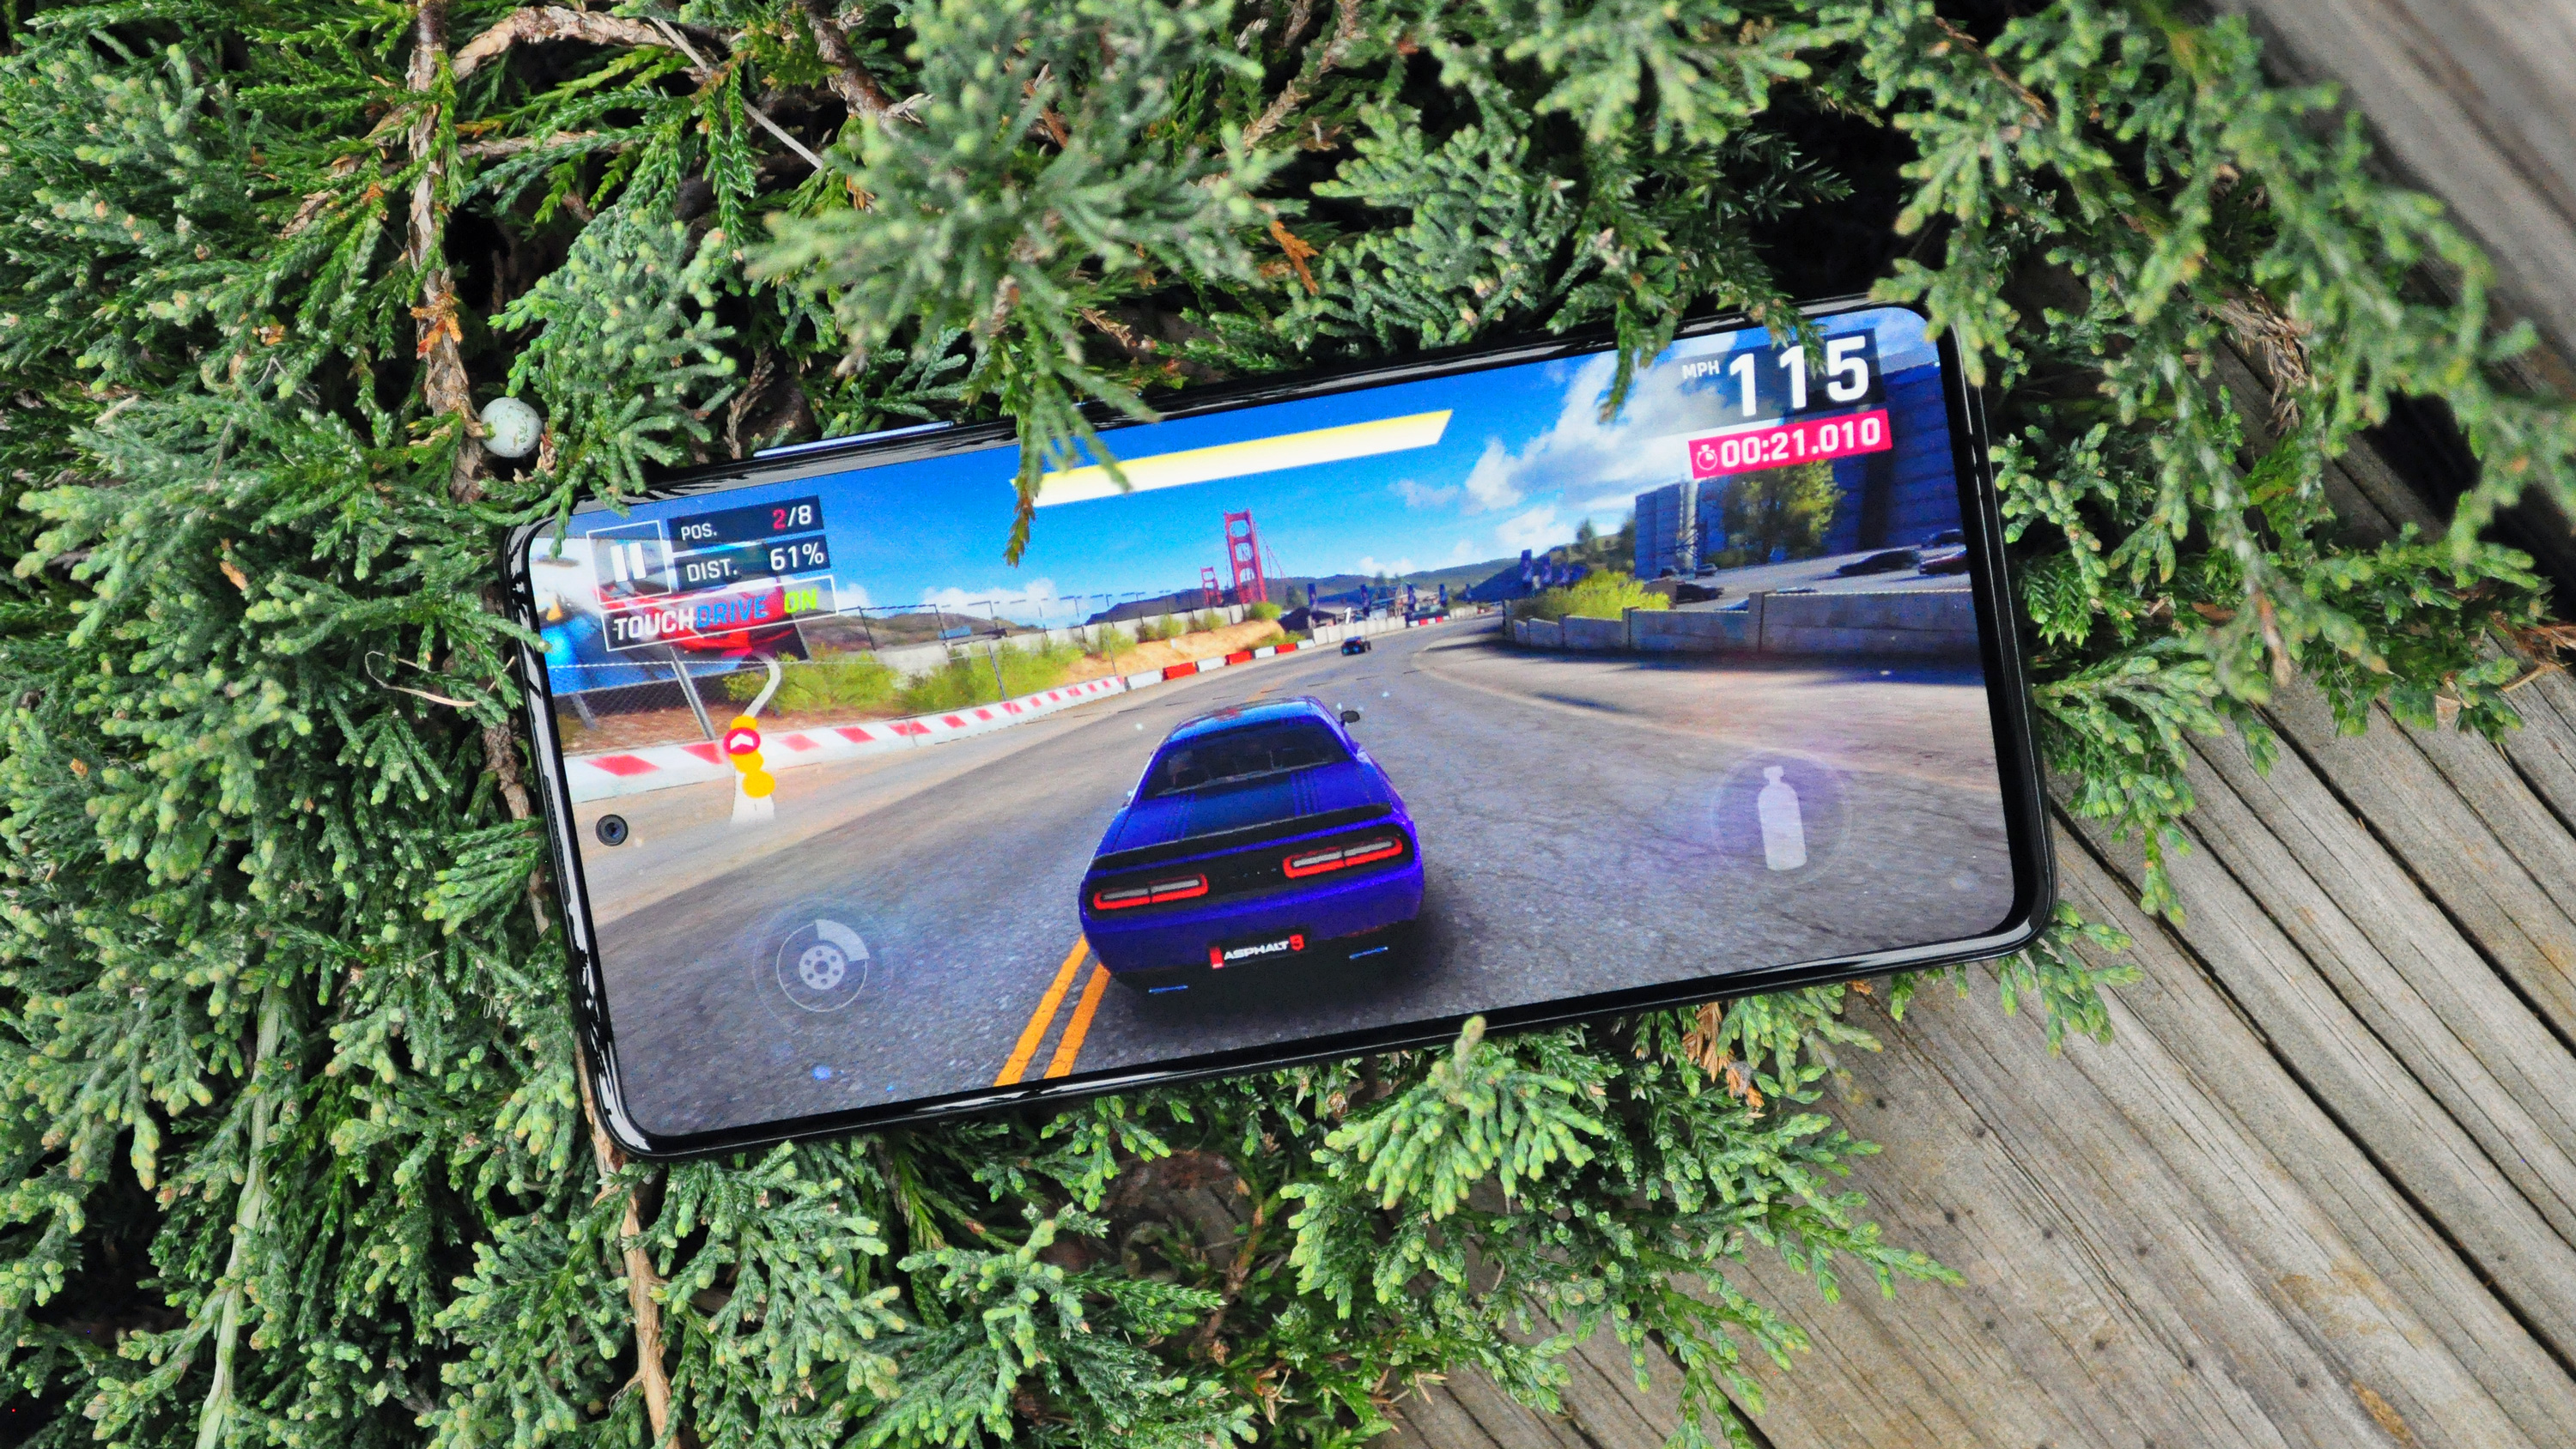 Samsung Galaxy A51 review game on screen